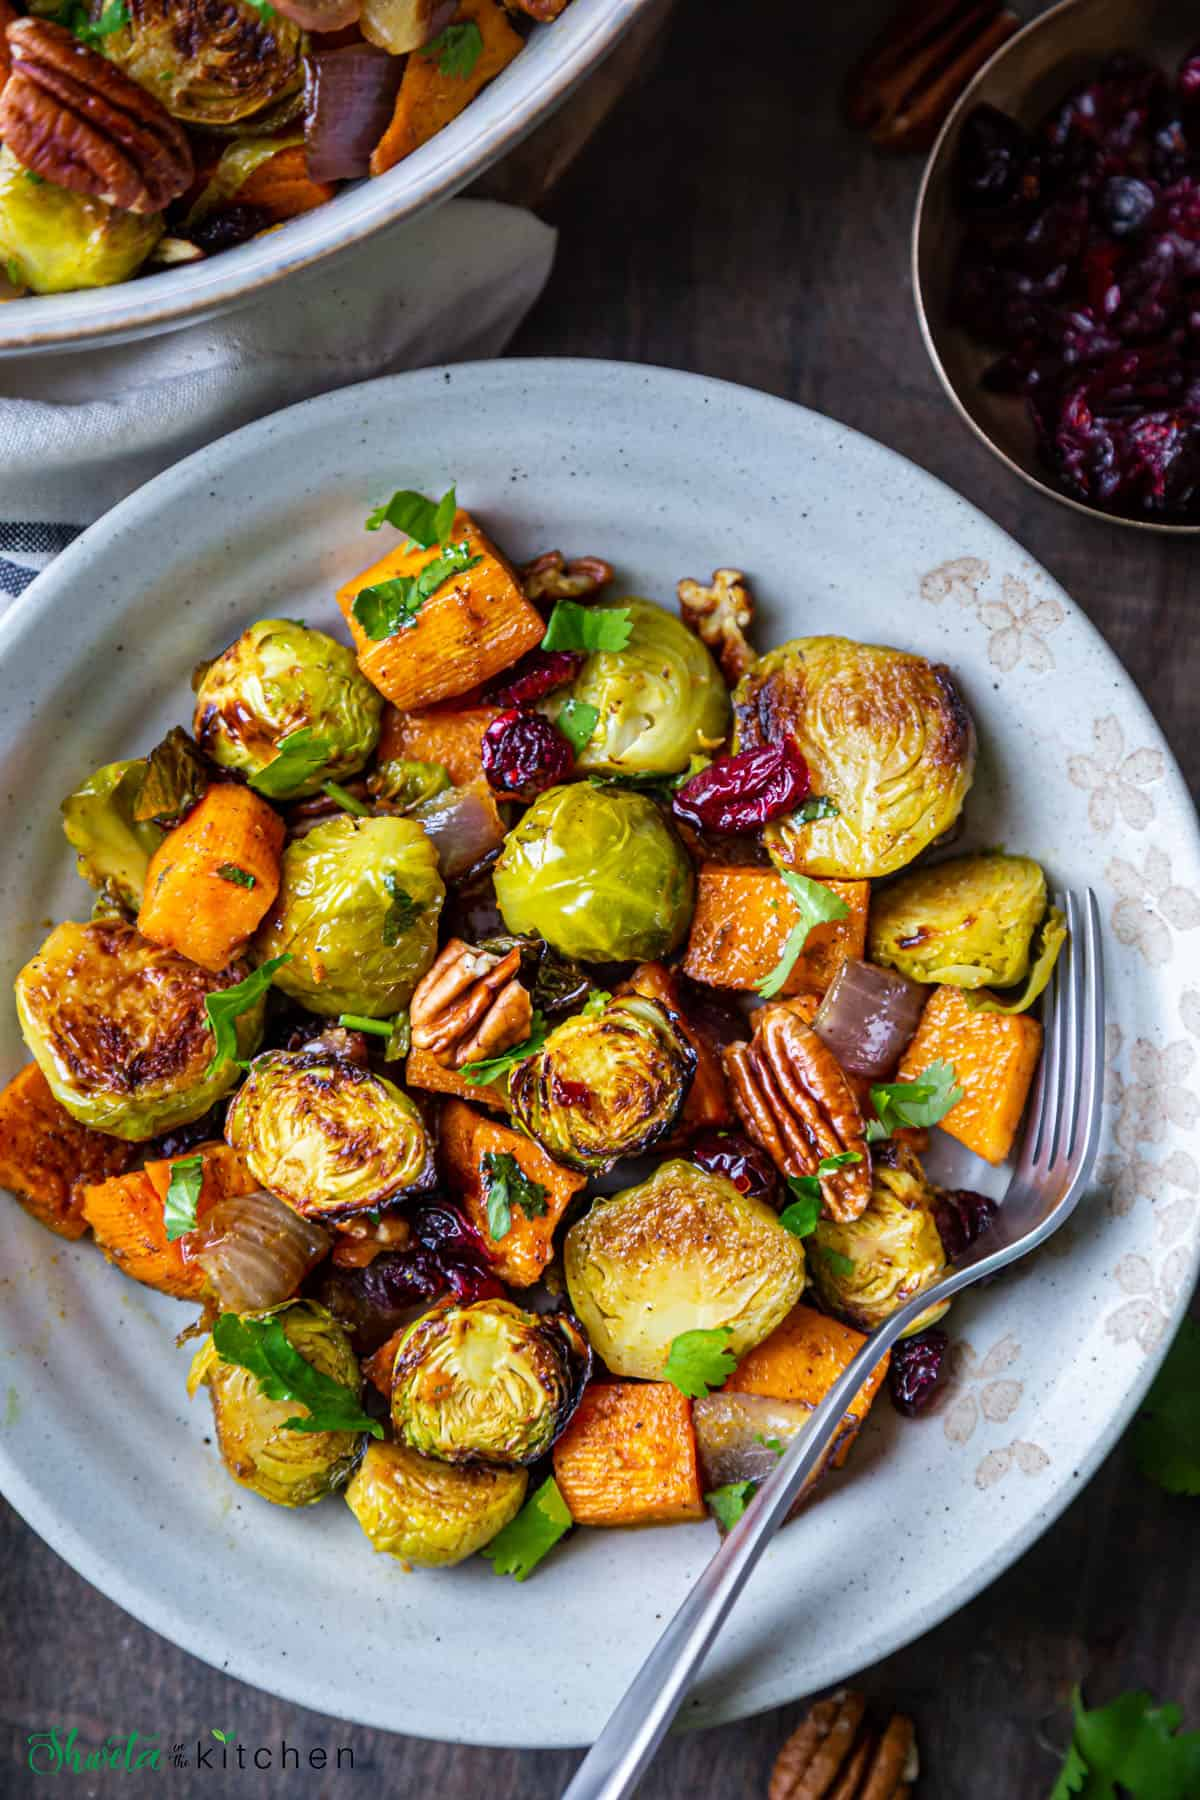 sweet potatoes andbrusselssproutsin on white plate